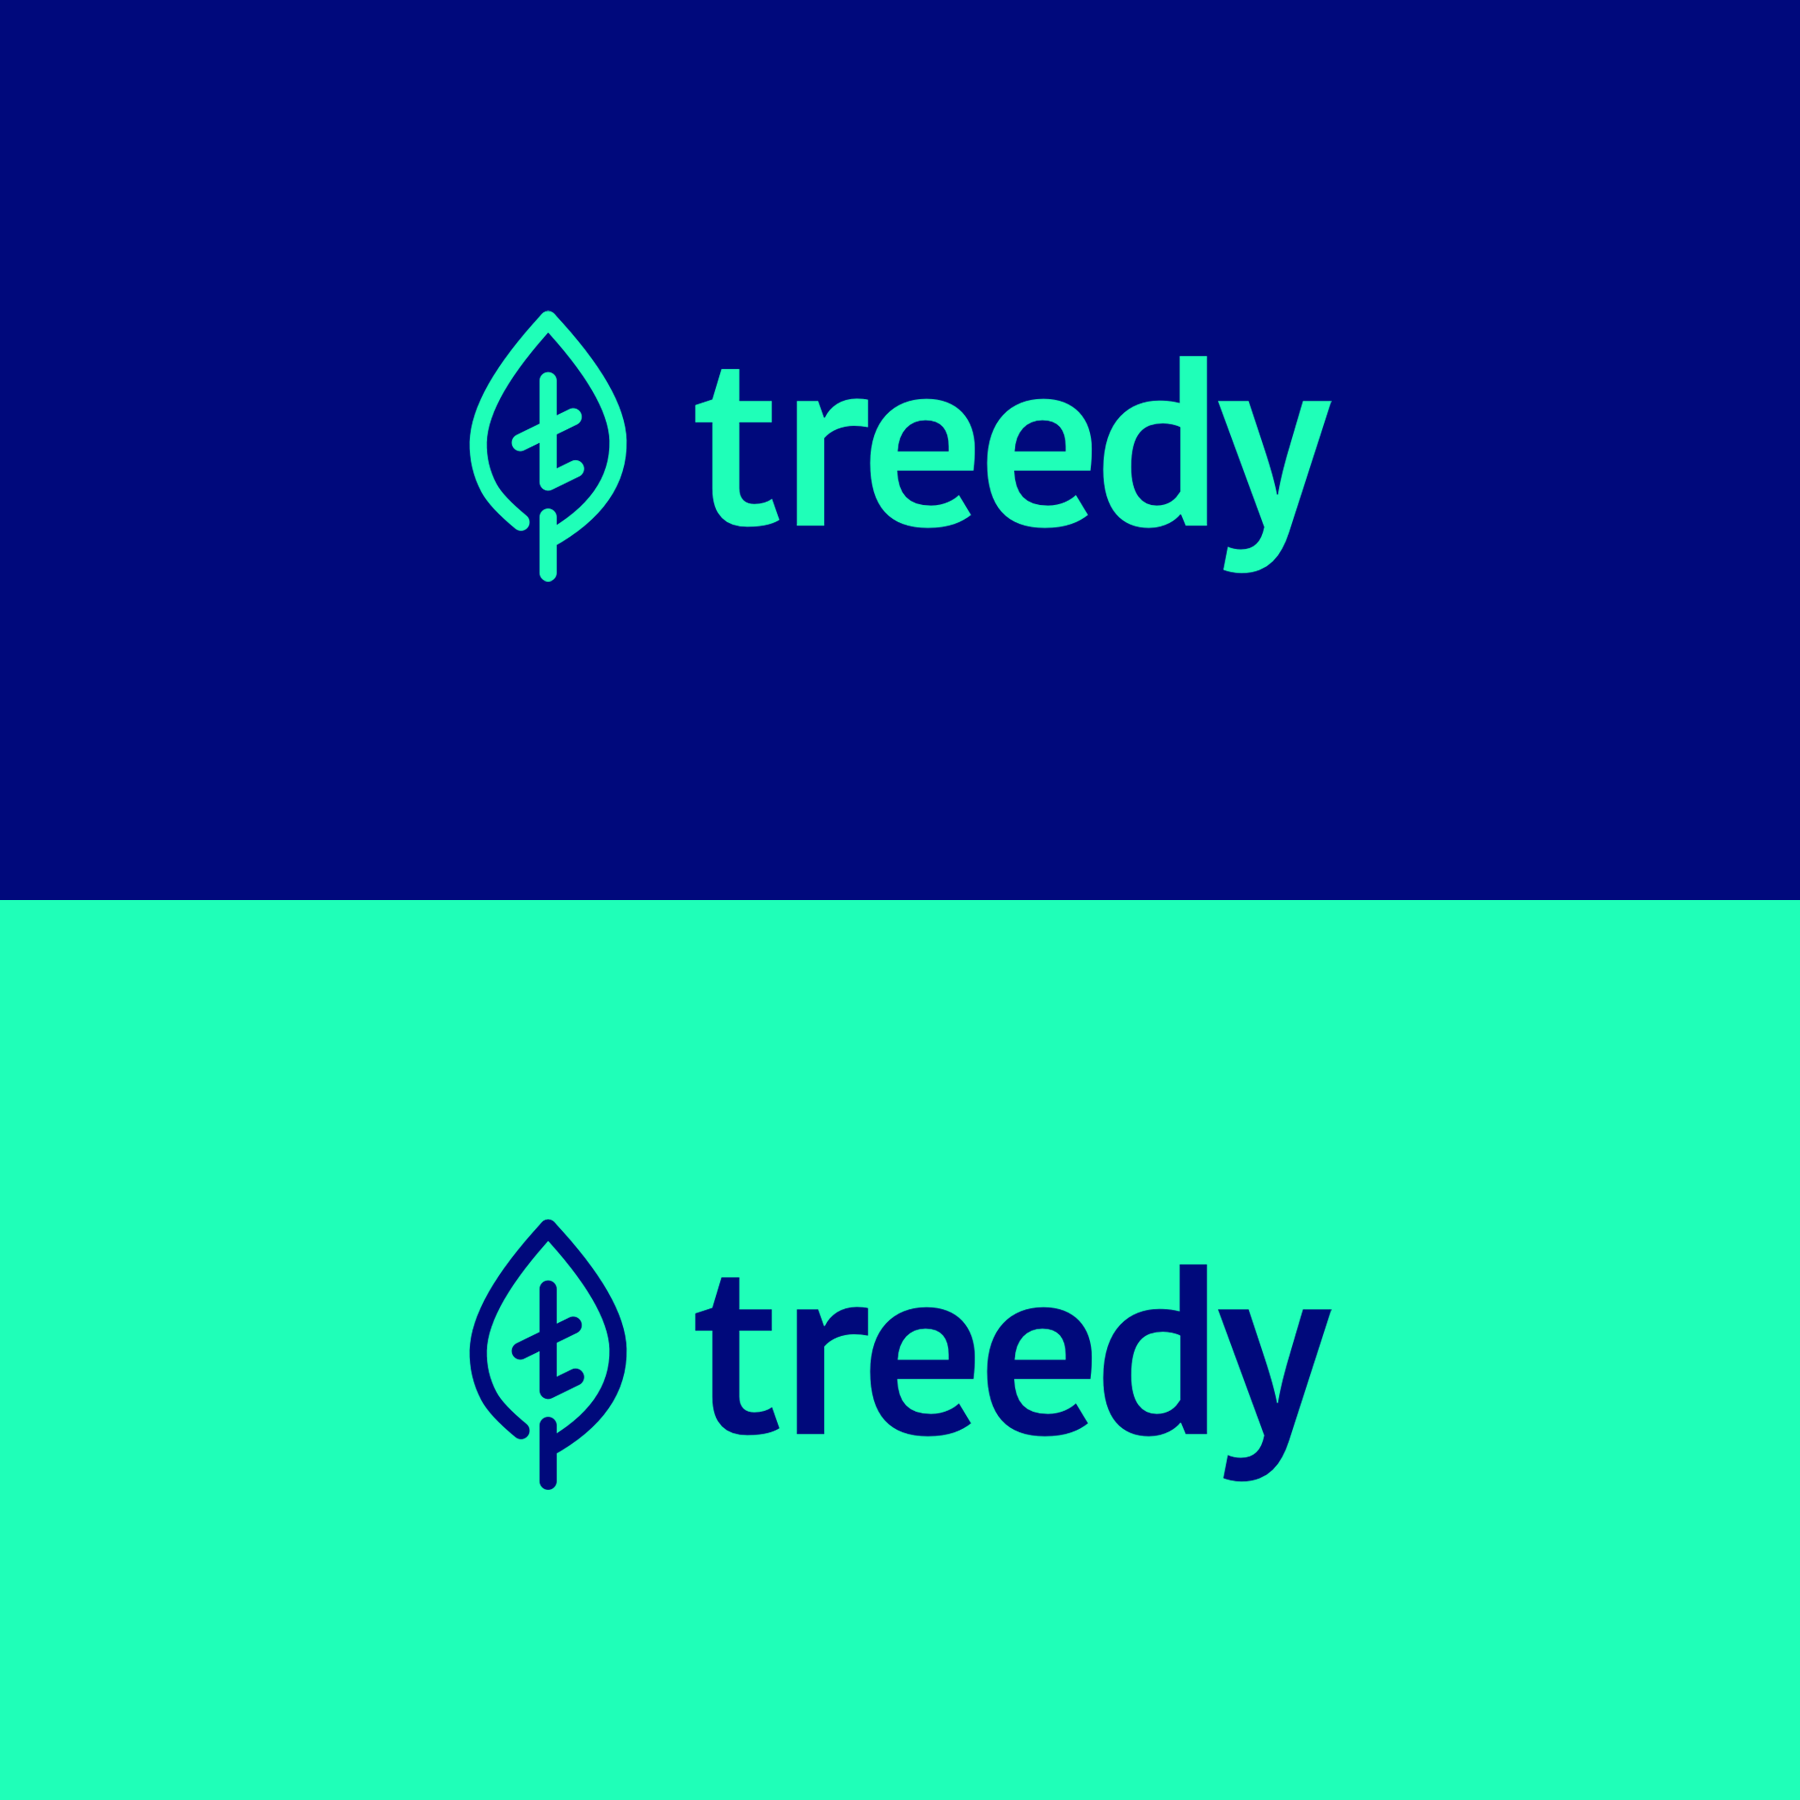 "Colors and brandingLogo Development - Treedy was a play on ""treaty,"" representing an agreement between two parties. We worked with the ""tree"" concept to incorporate a minimalist logo that brought together a lowercase t and a leaf shape. The brand palette focused on trustworthy colors popular in financial apps—like Mint, Robinhood, and others—while still feeling hip and modern."